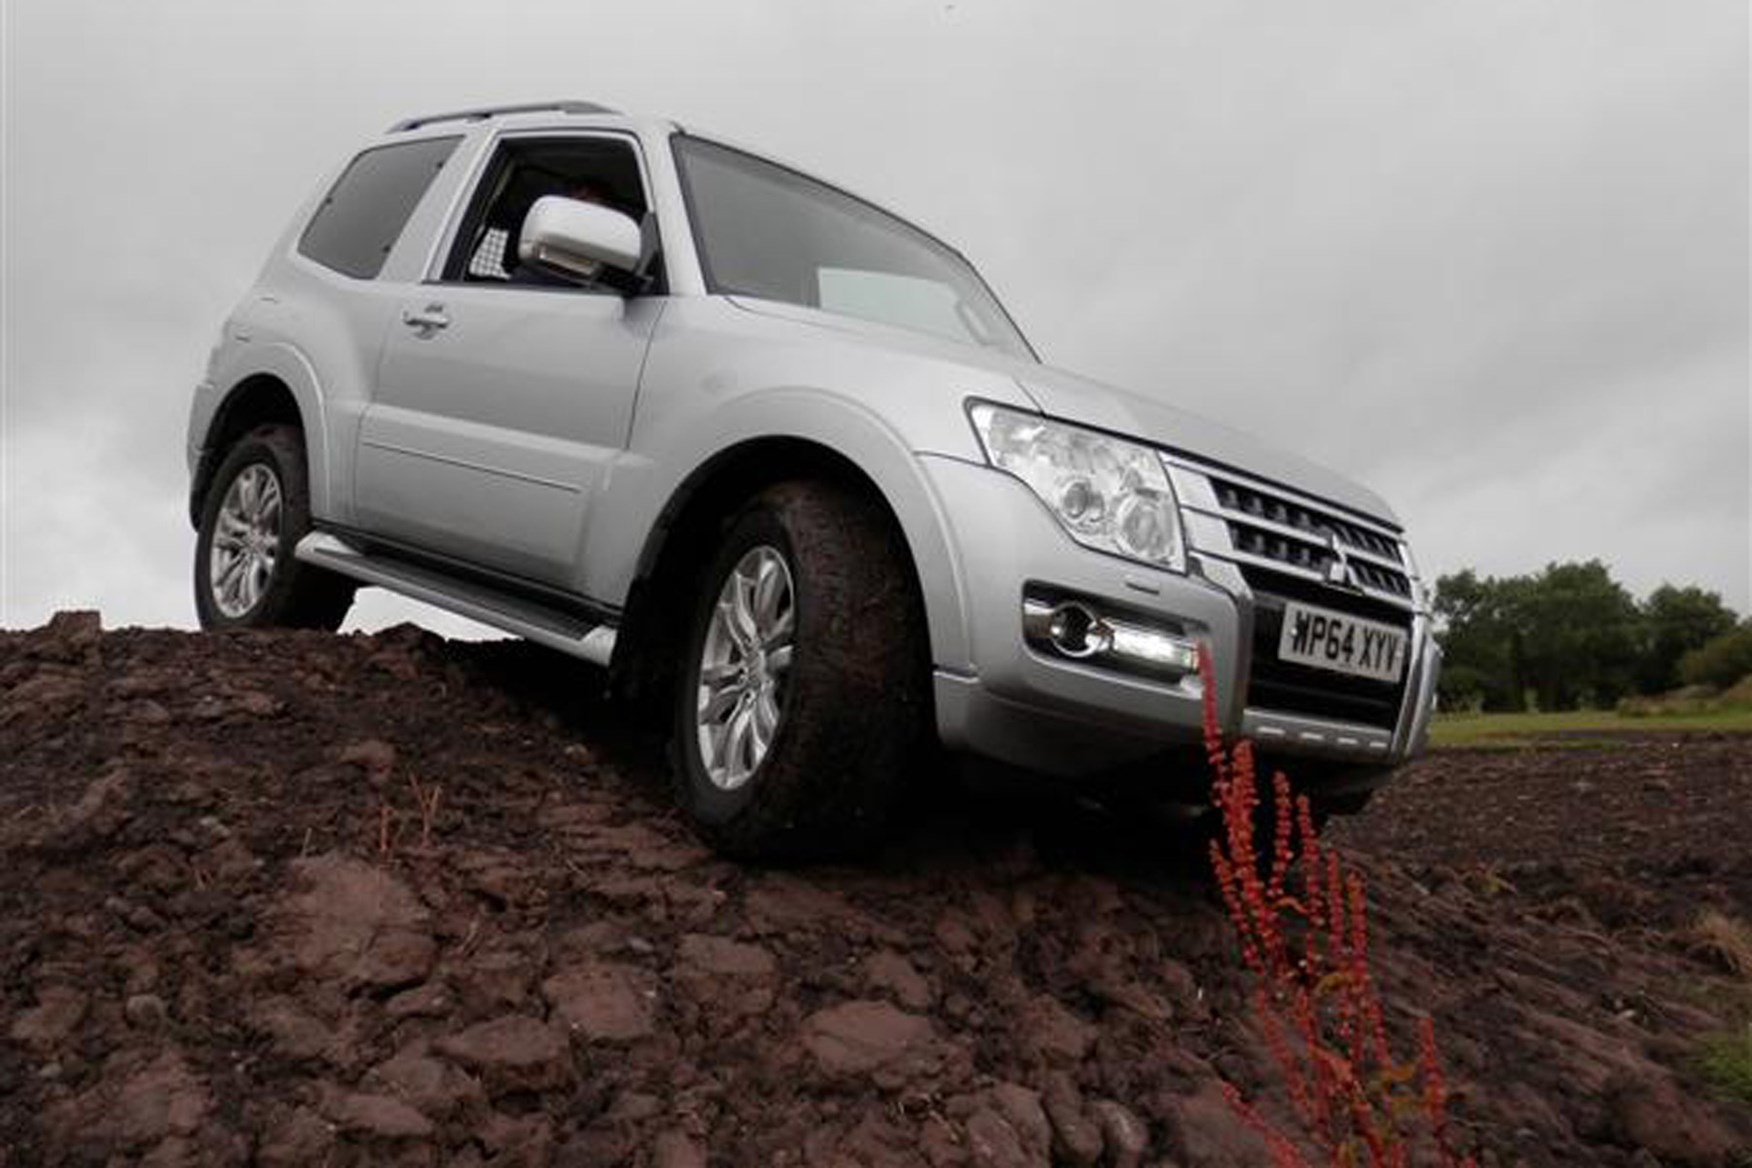 Mitsubishi Shogun review on Parkers Vans - off road capabilities